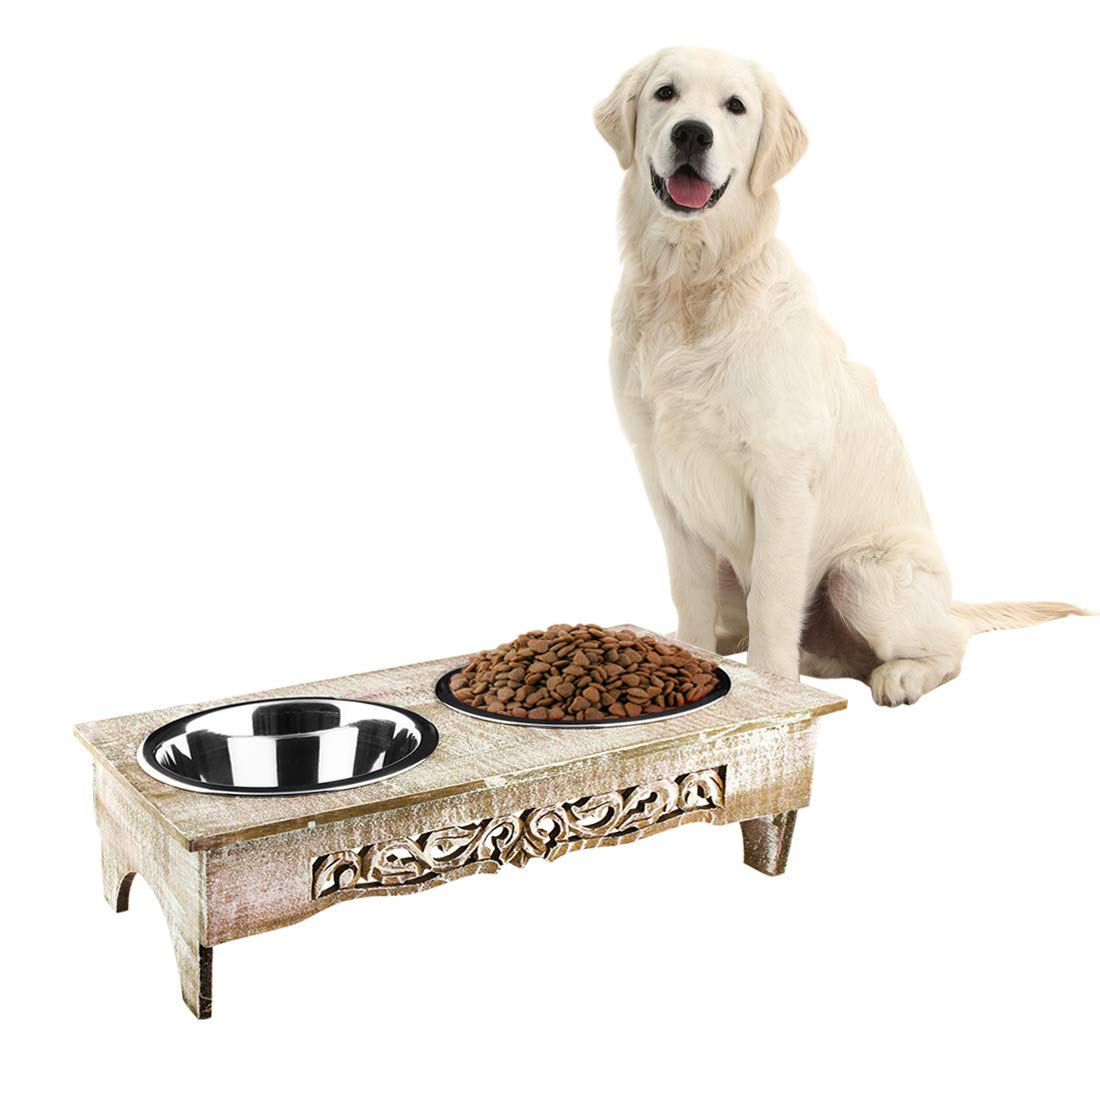 Aheli Wooden Elevated Dog Cat Pet Bird Food Water Feeder Raised Stand Comes with Stainless Steel Bowls by Aheli